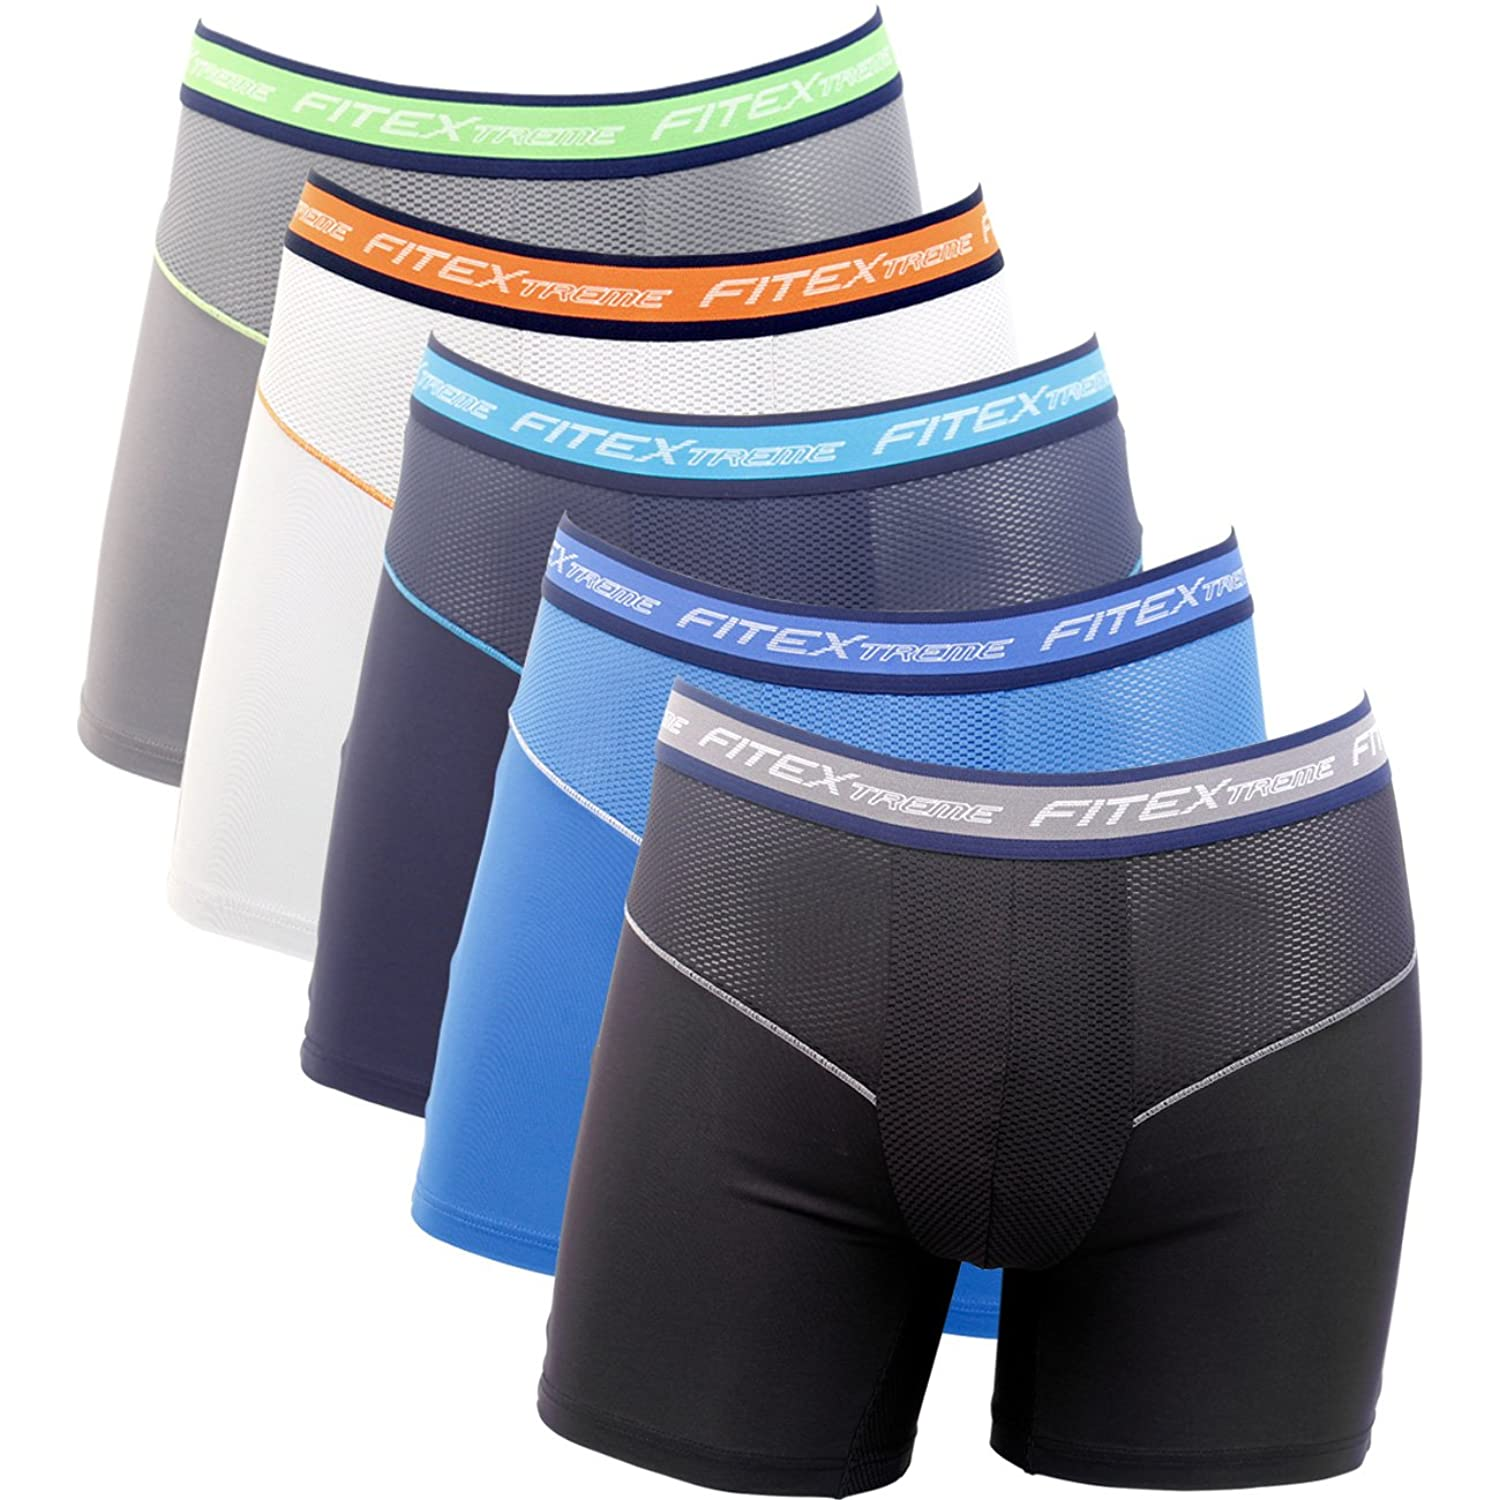 Mansbasic FITEXTREME Mens 3 to 5 Pack Cool Sporty Performance Stretch Fashion Boxer Briefs